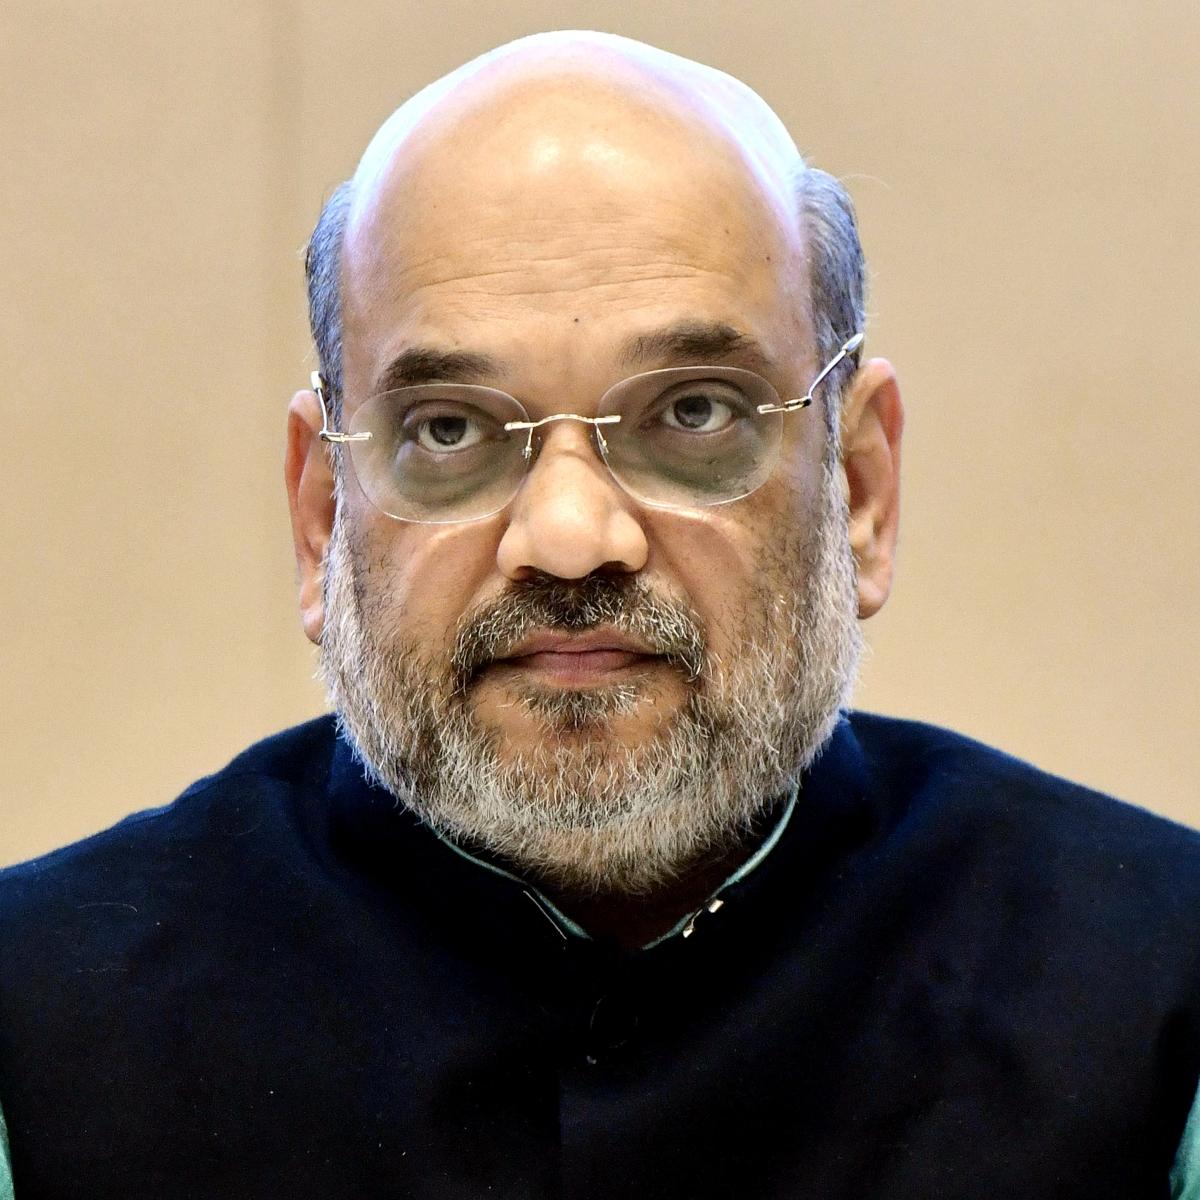 'There will be repercussions...': Amit Shah warns 'Bharat Tere Tukde Honge conspirators' against challenging unity of India